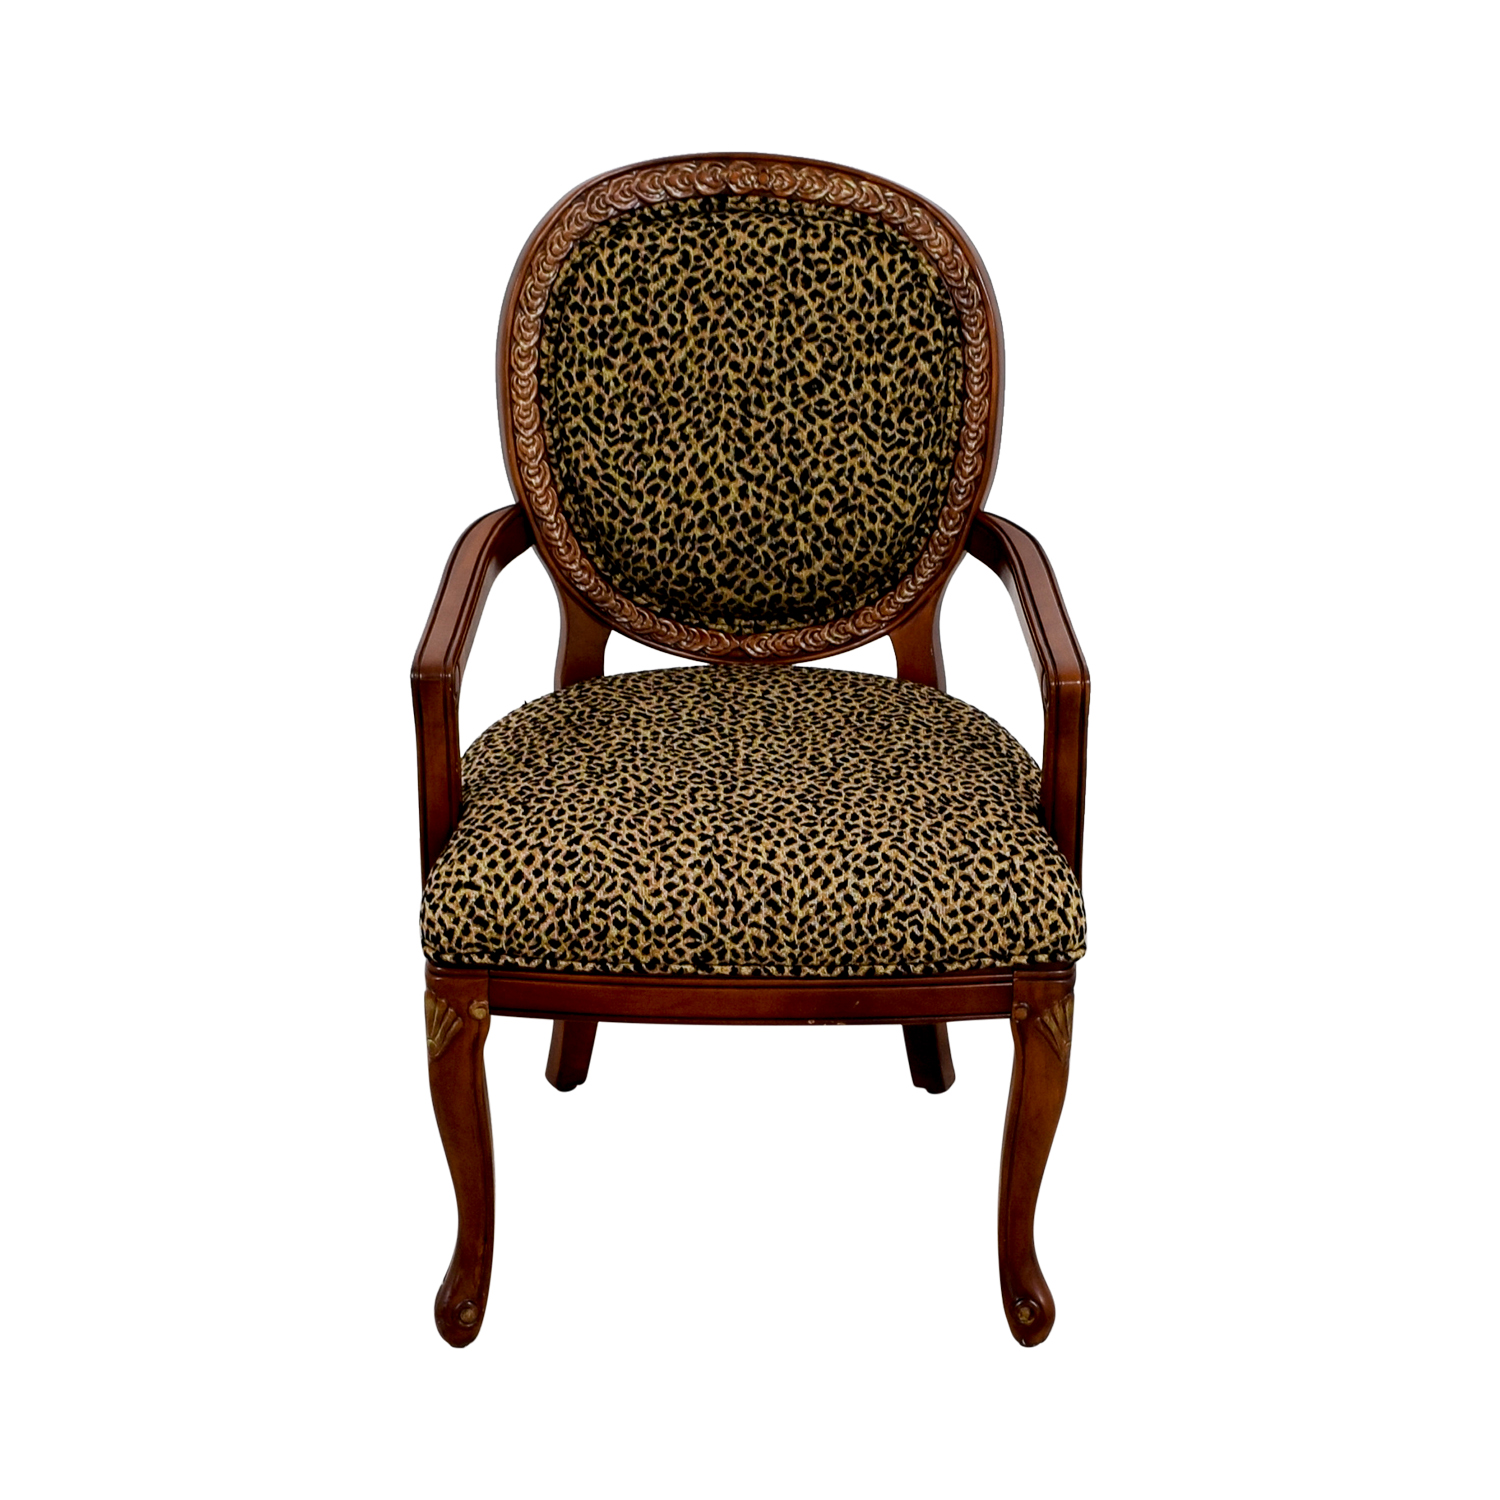 63 Off Leopard Upholstered Wood Arm Chair Chairs